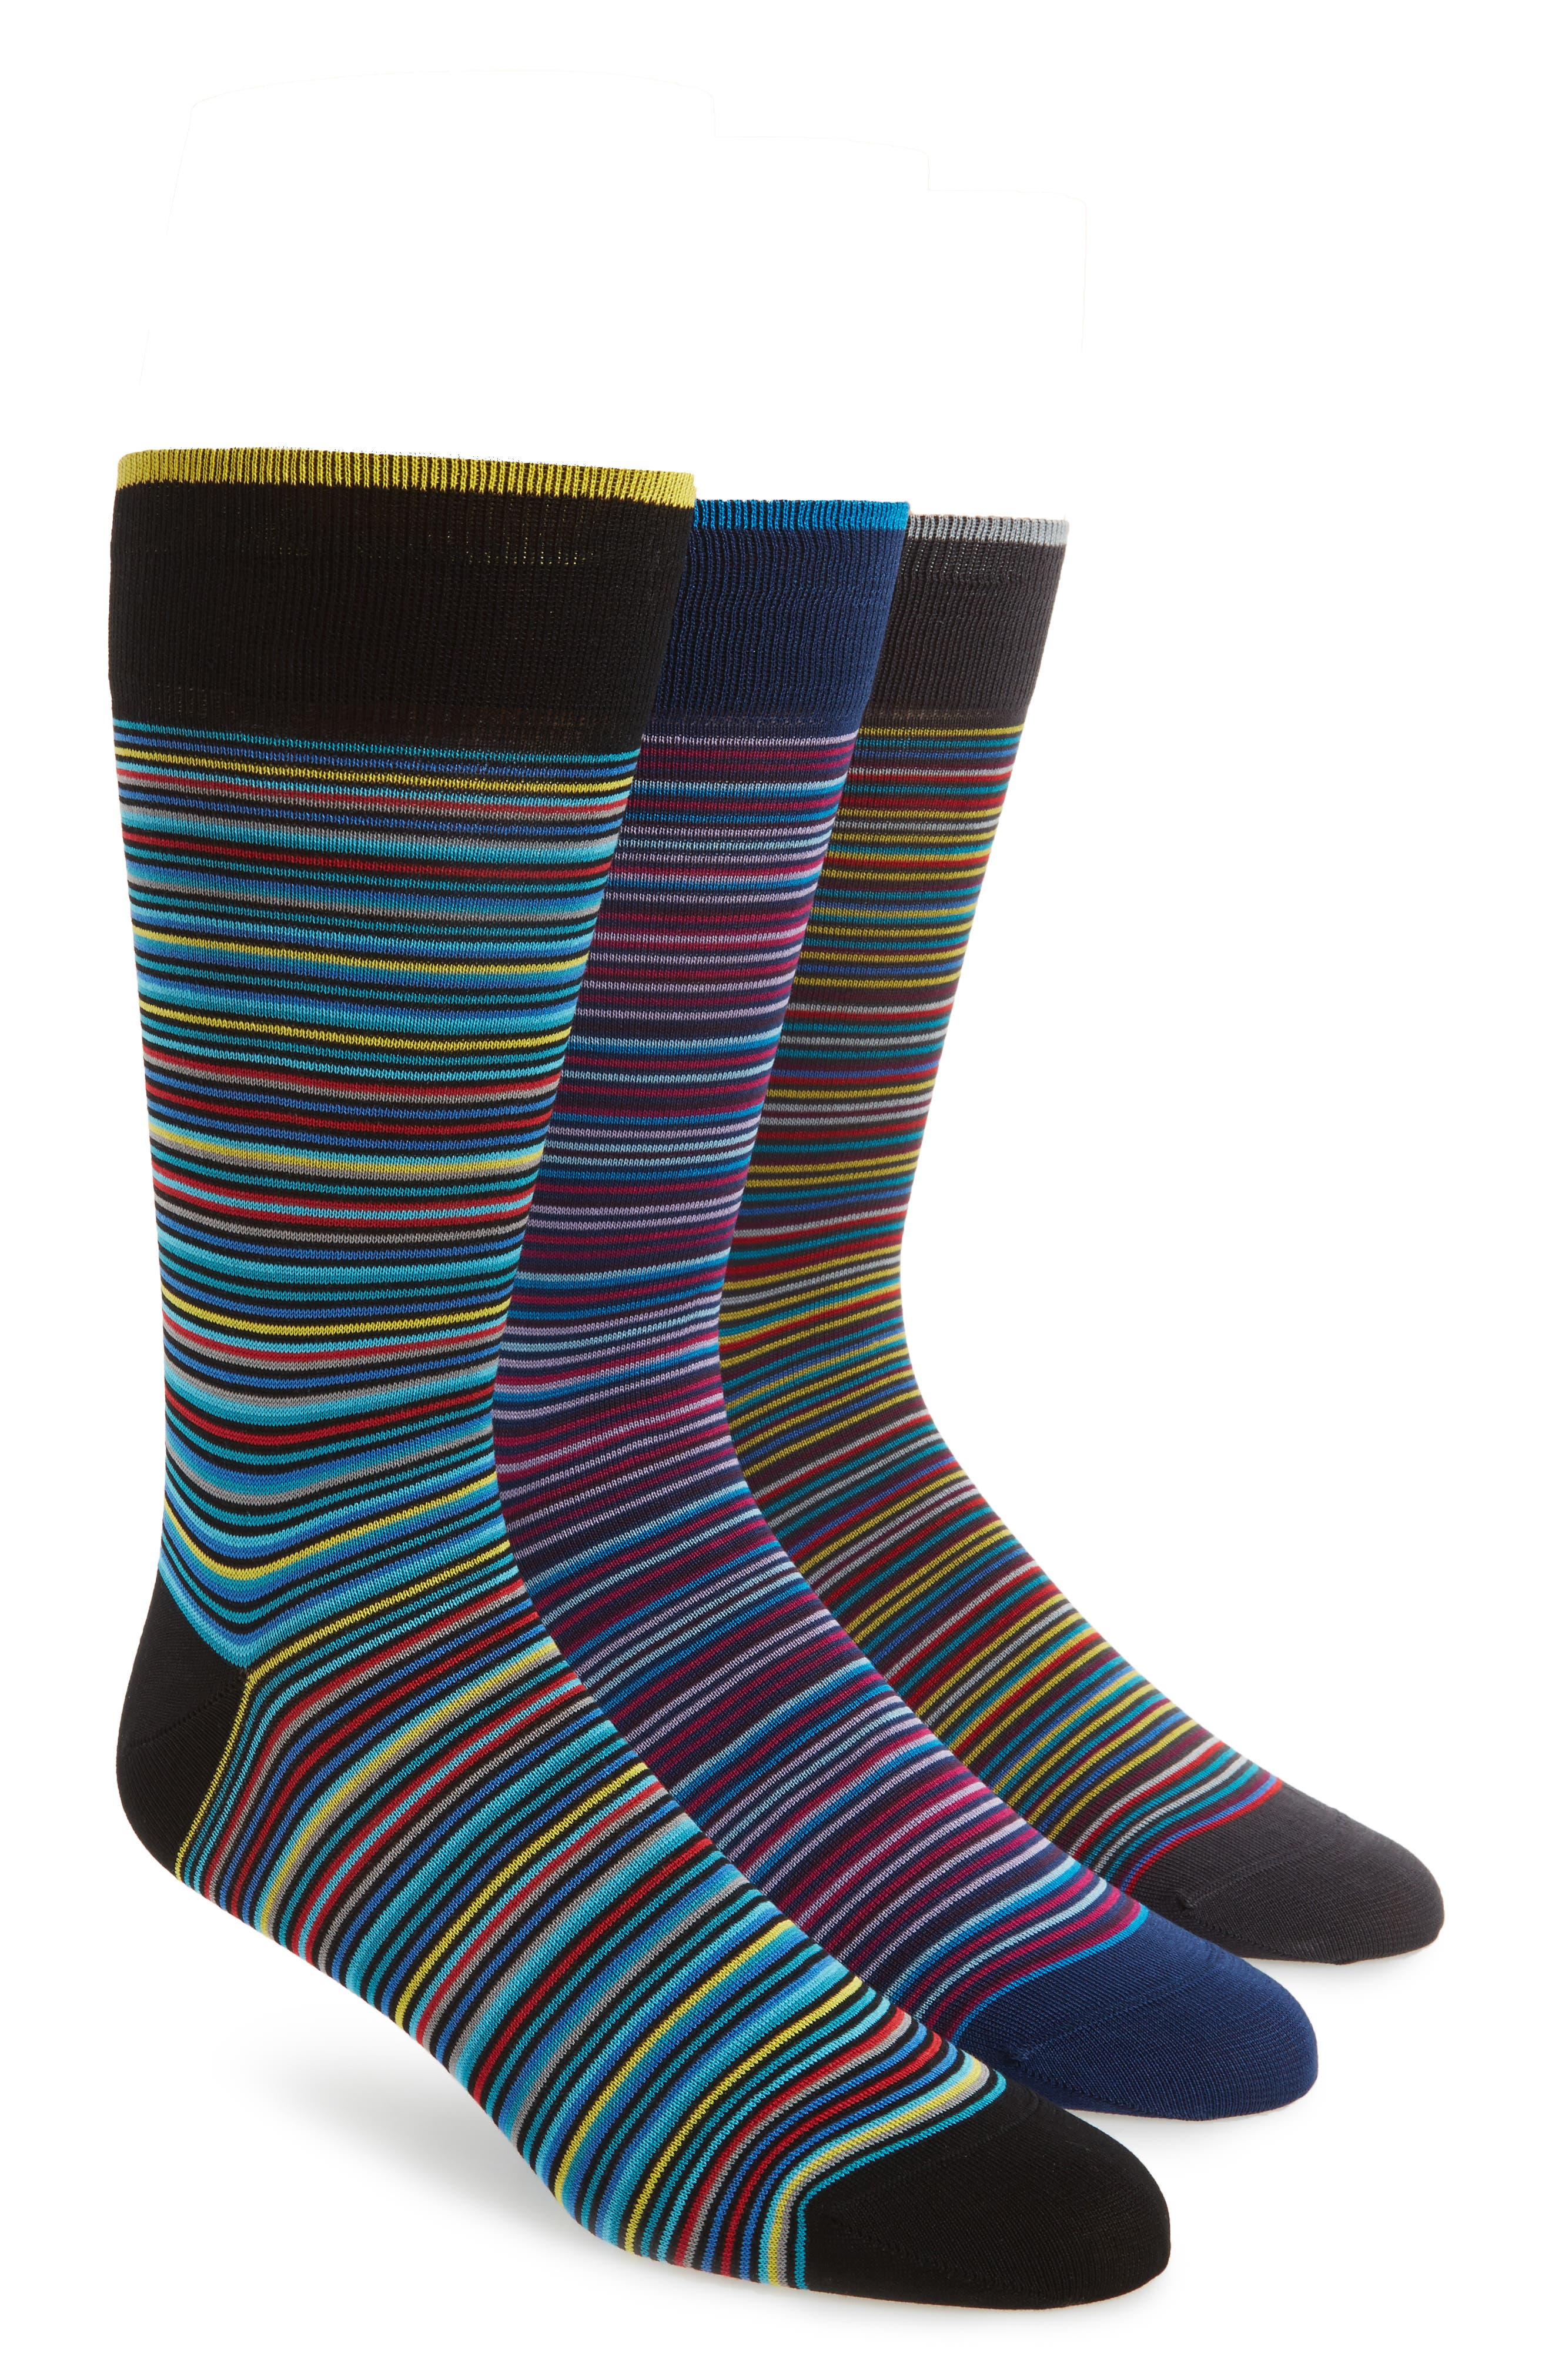 Alternate Image 1 Selected - Bugatchi 3-Pack Stripe Cotton & Cashmere Blend Socks ($59.85 Value)